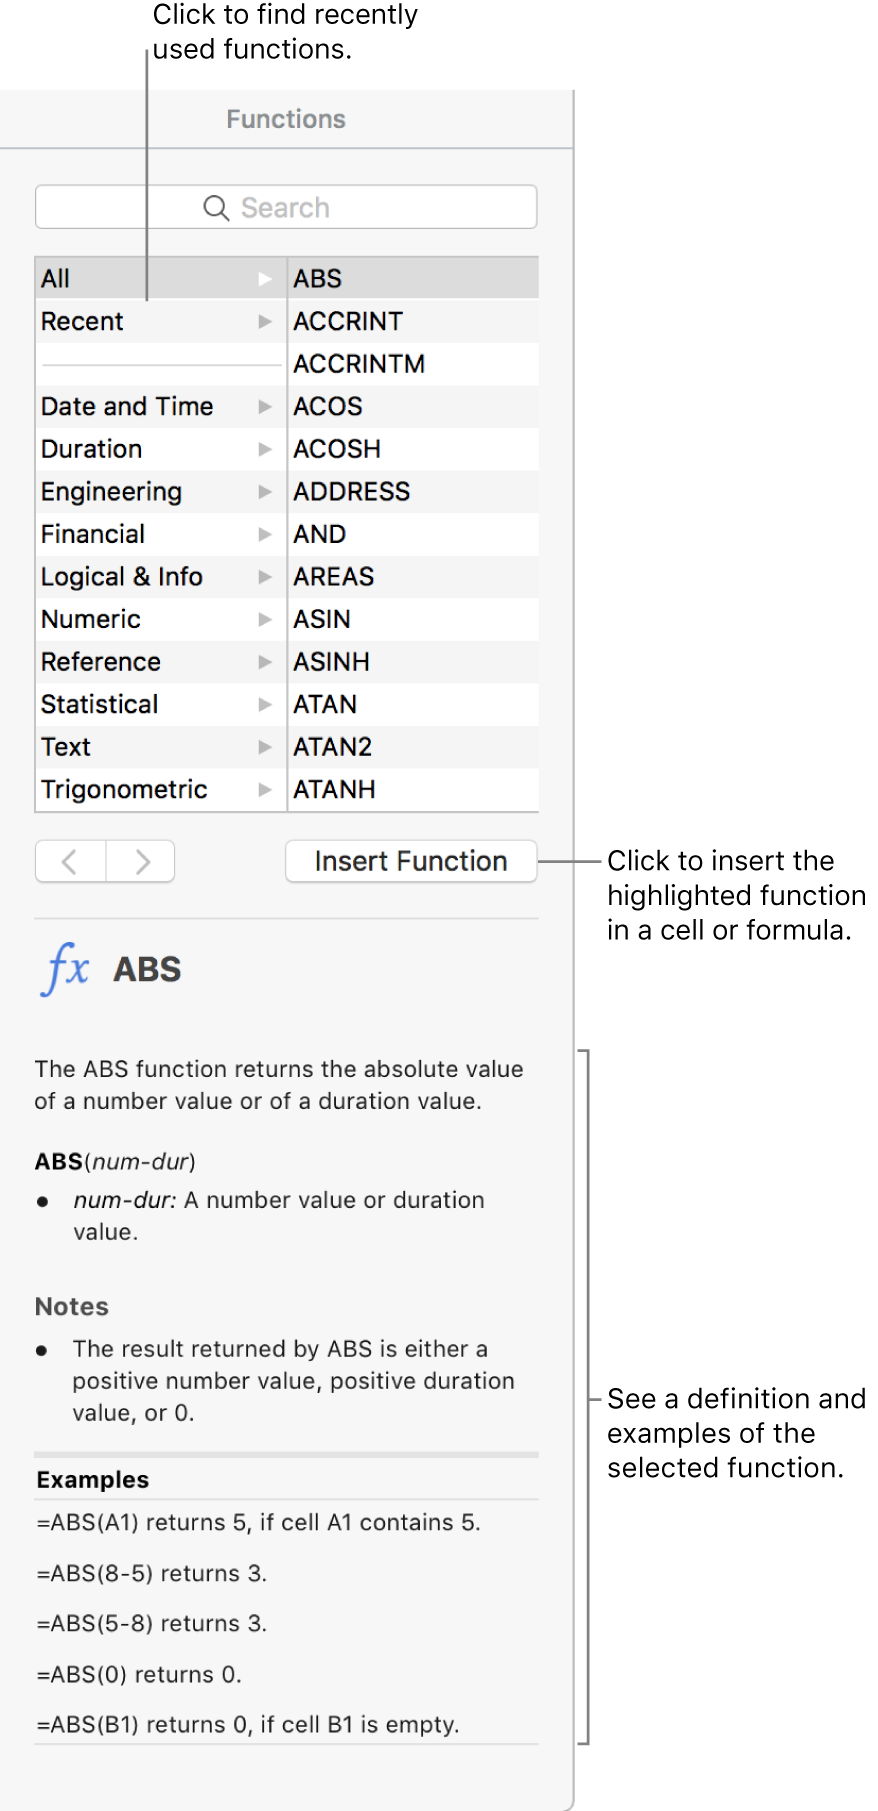 The Function Browser with callouts to recently used functions, the Insert Function button, and the function definition.